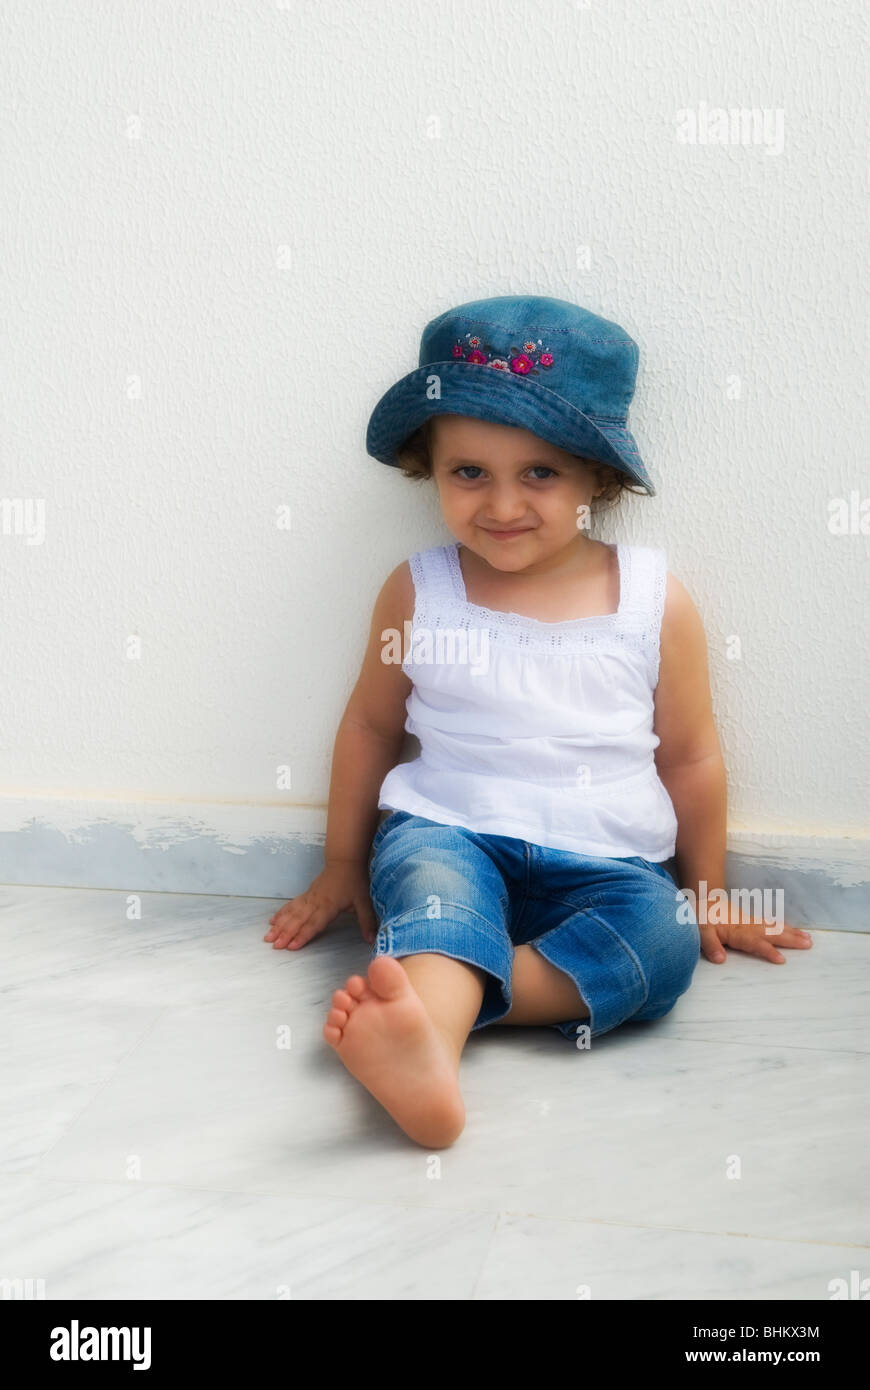 Cute little girl wearing jeans sat on the floor Beirut Lebanon Middle East - Stock Image